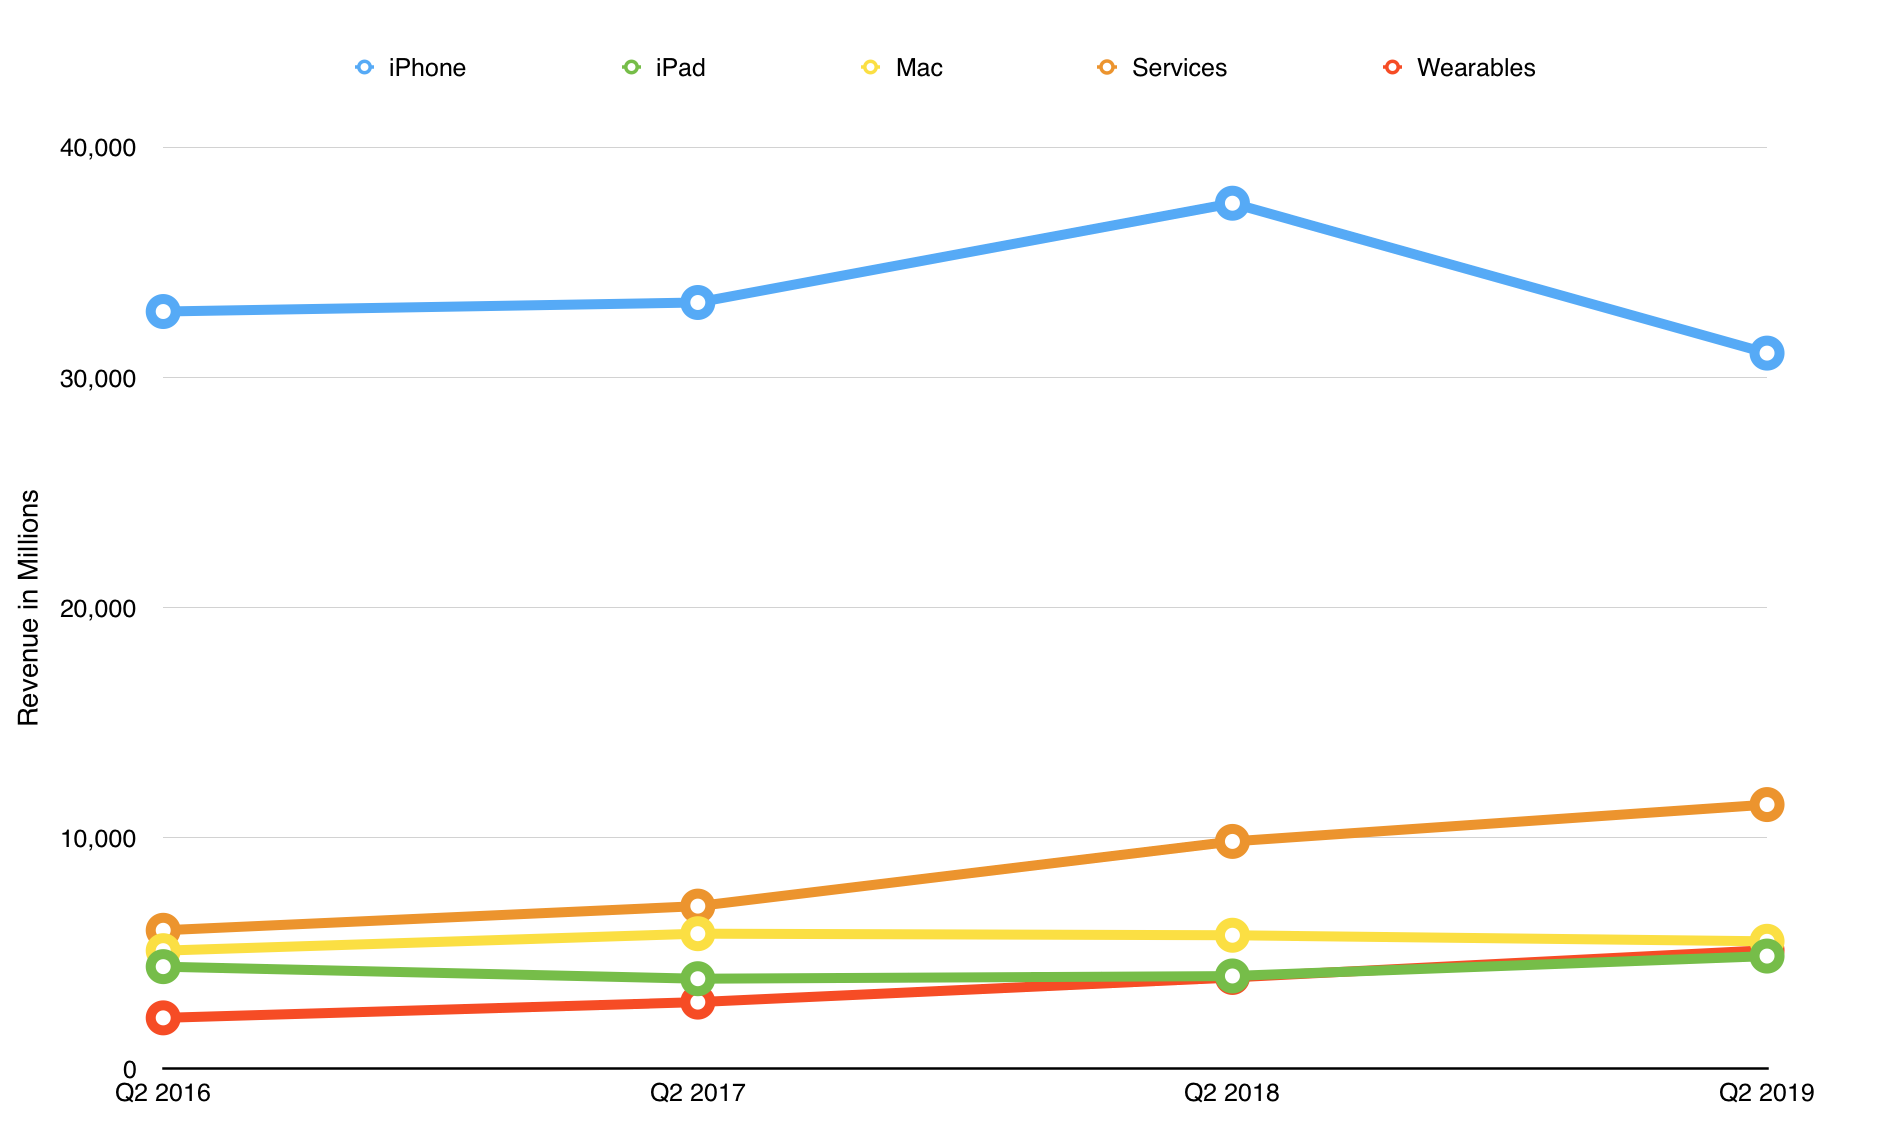 iPhone revenue took a nosedive in Q2, and nothing really made up for it